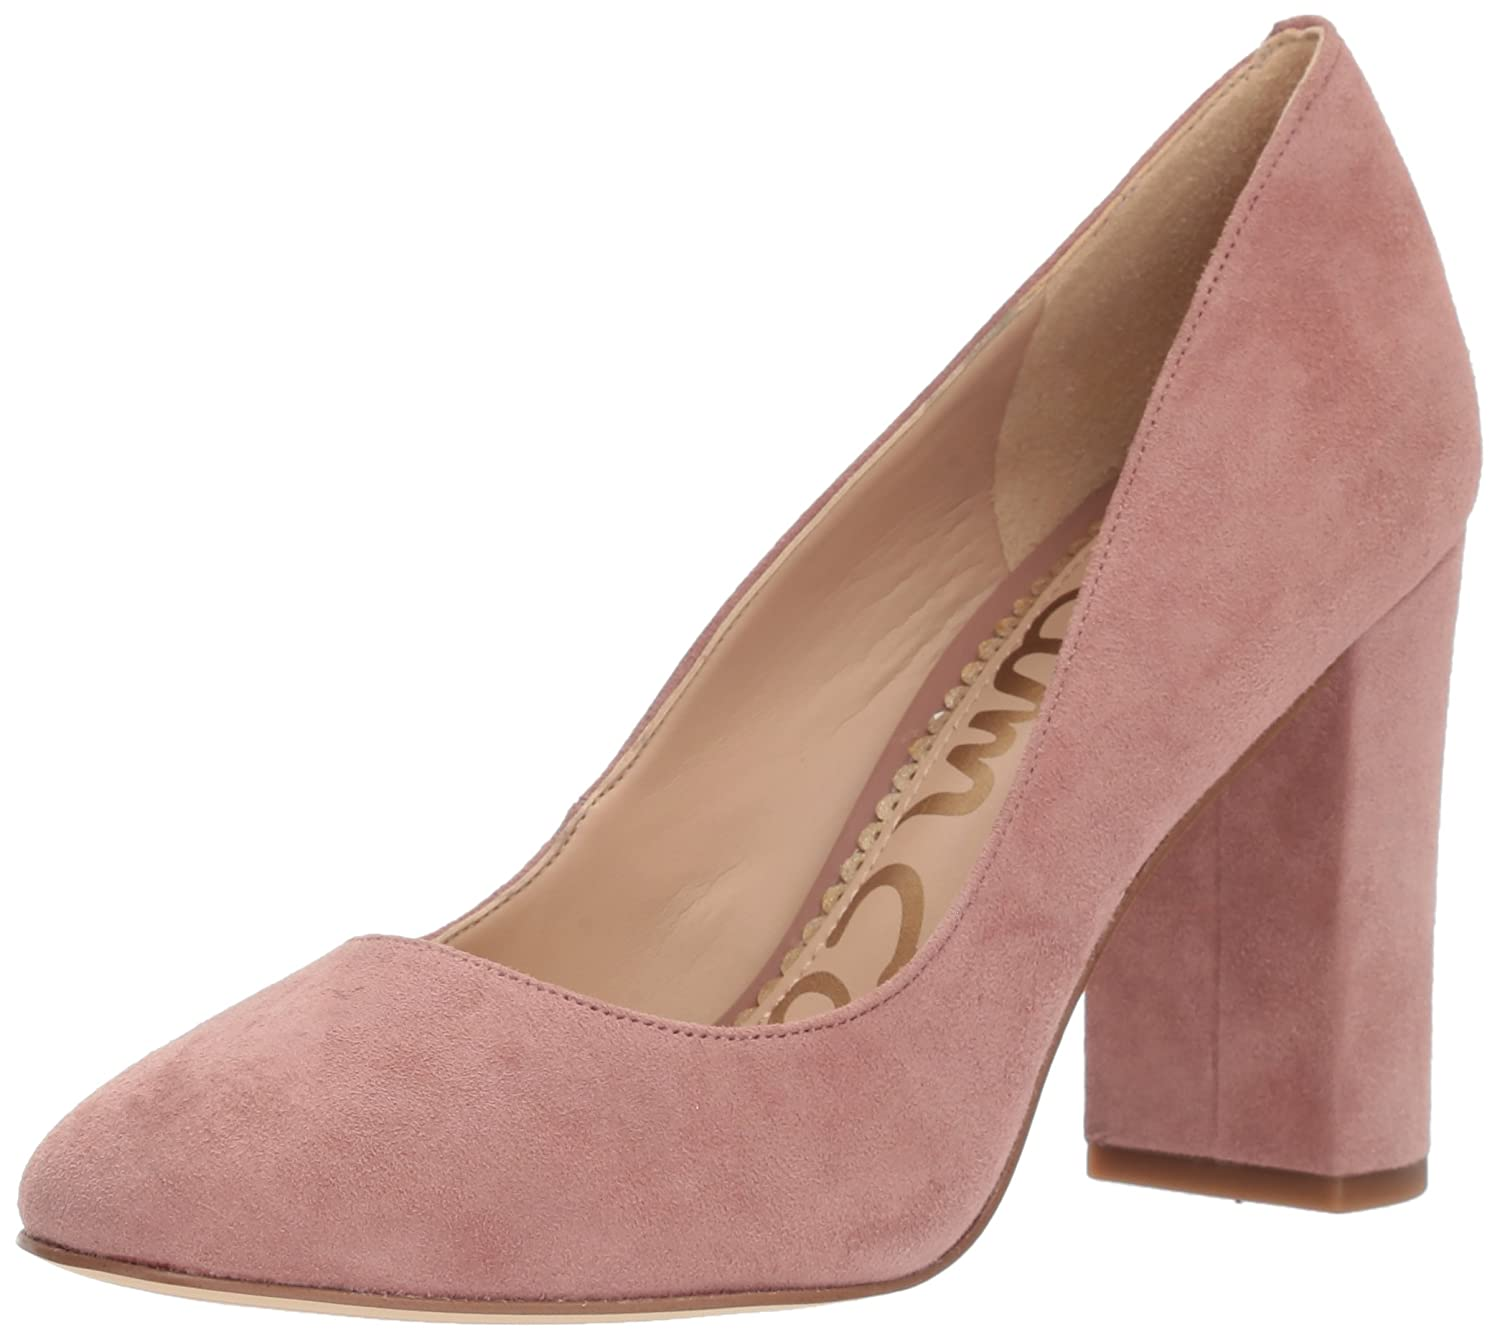 Dusty pink Suede Sam Edelman Women's Stillson Pumps